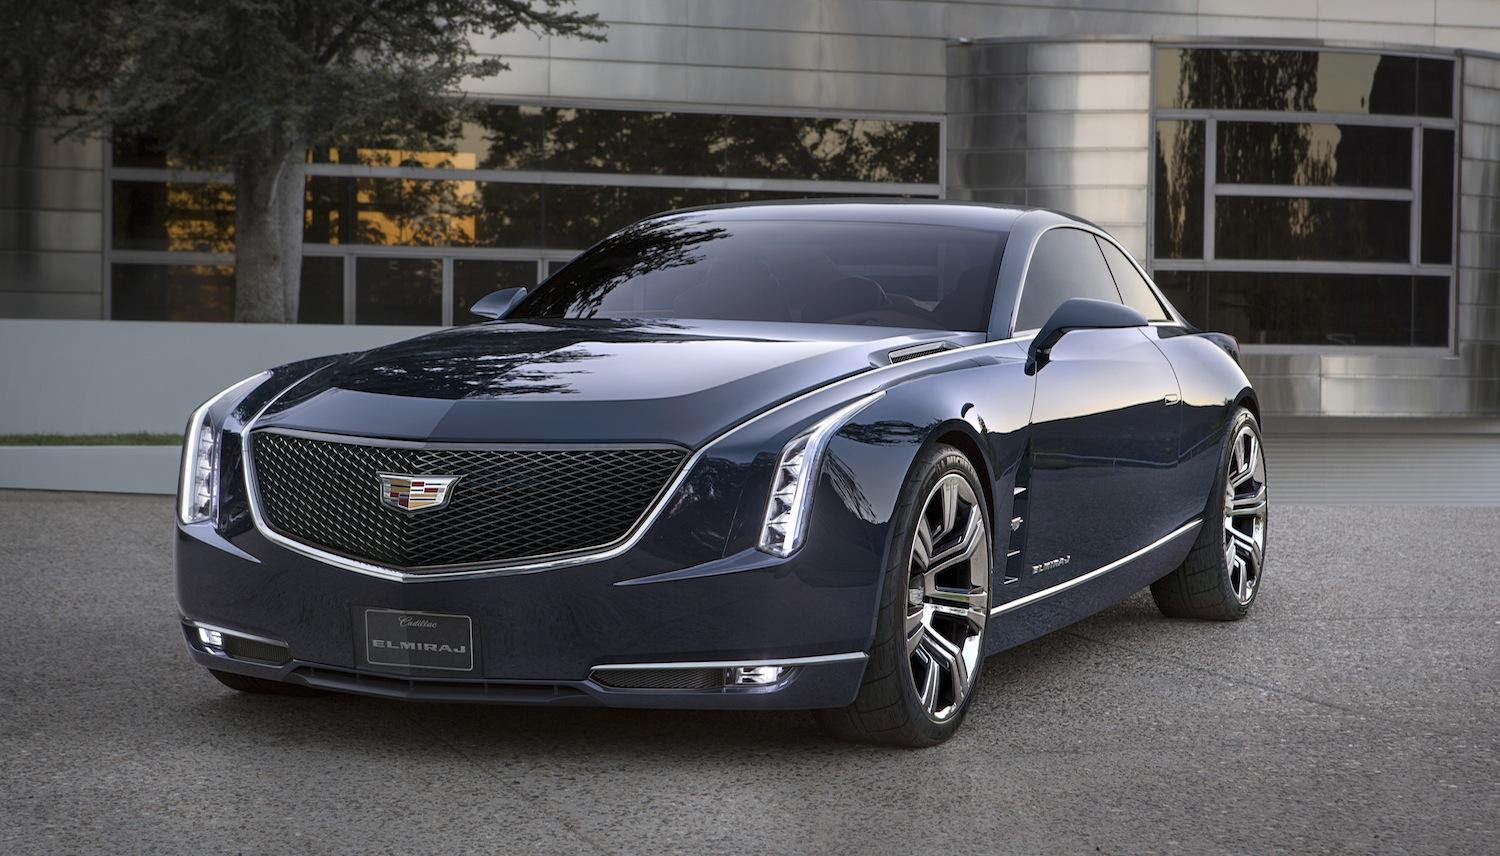 The Cadillac Elmiraj concept car is the modern-day 500hp ...